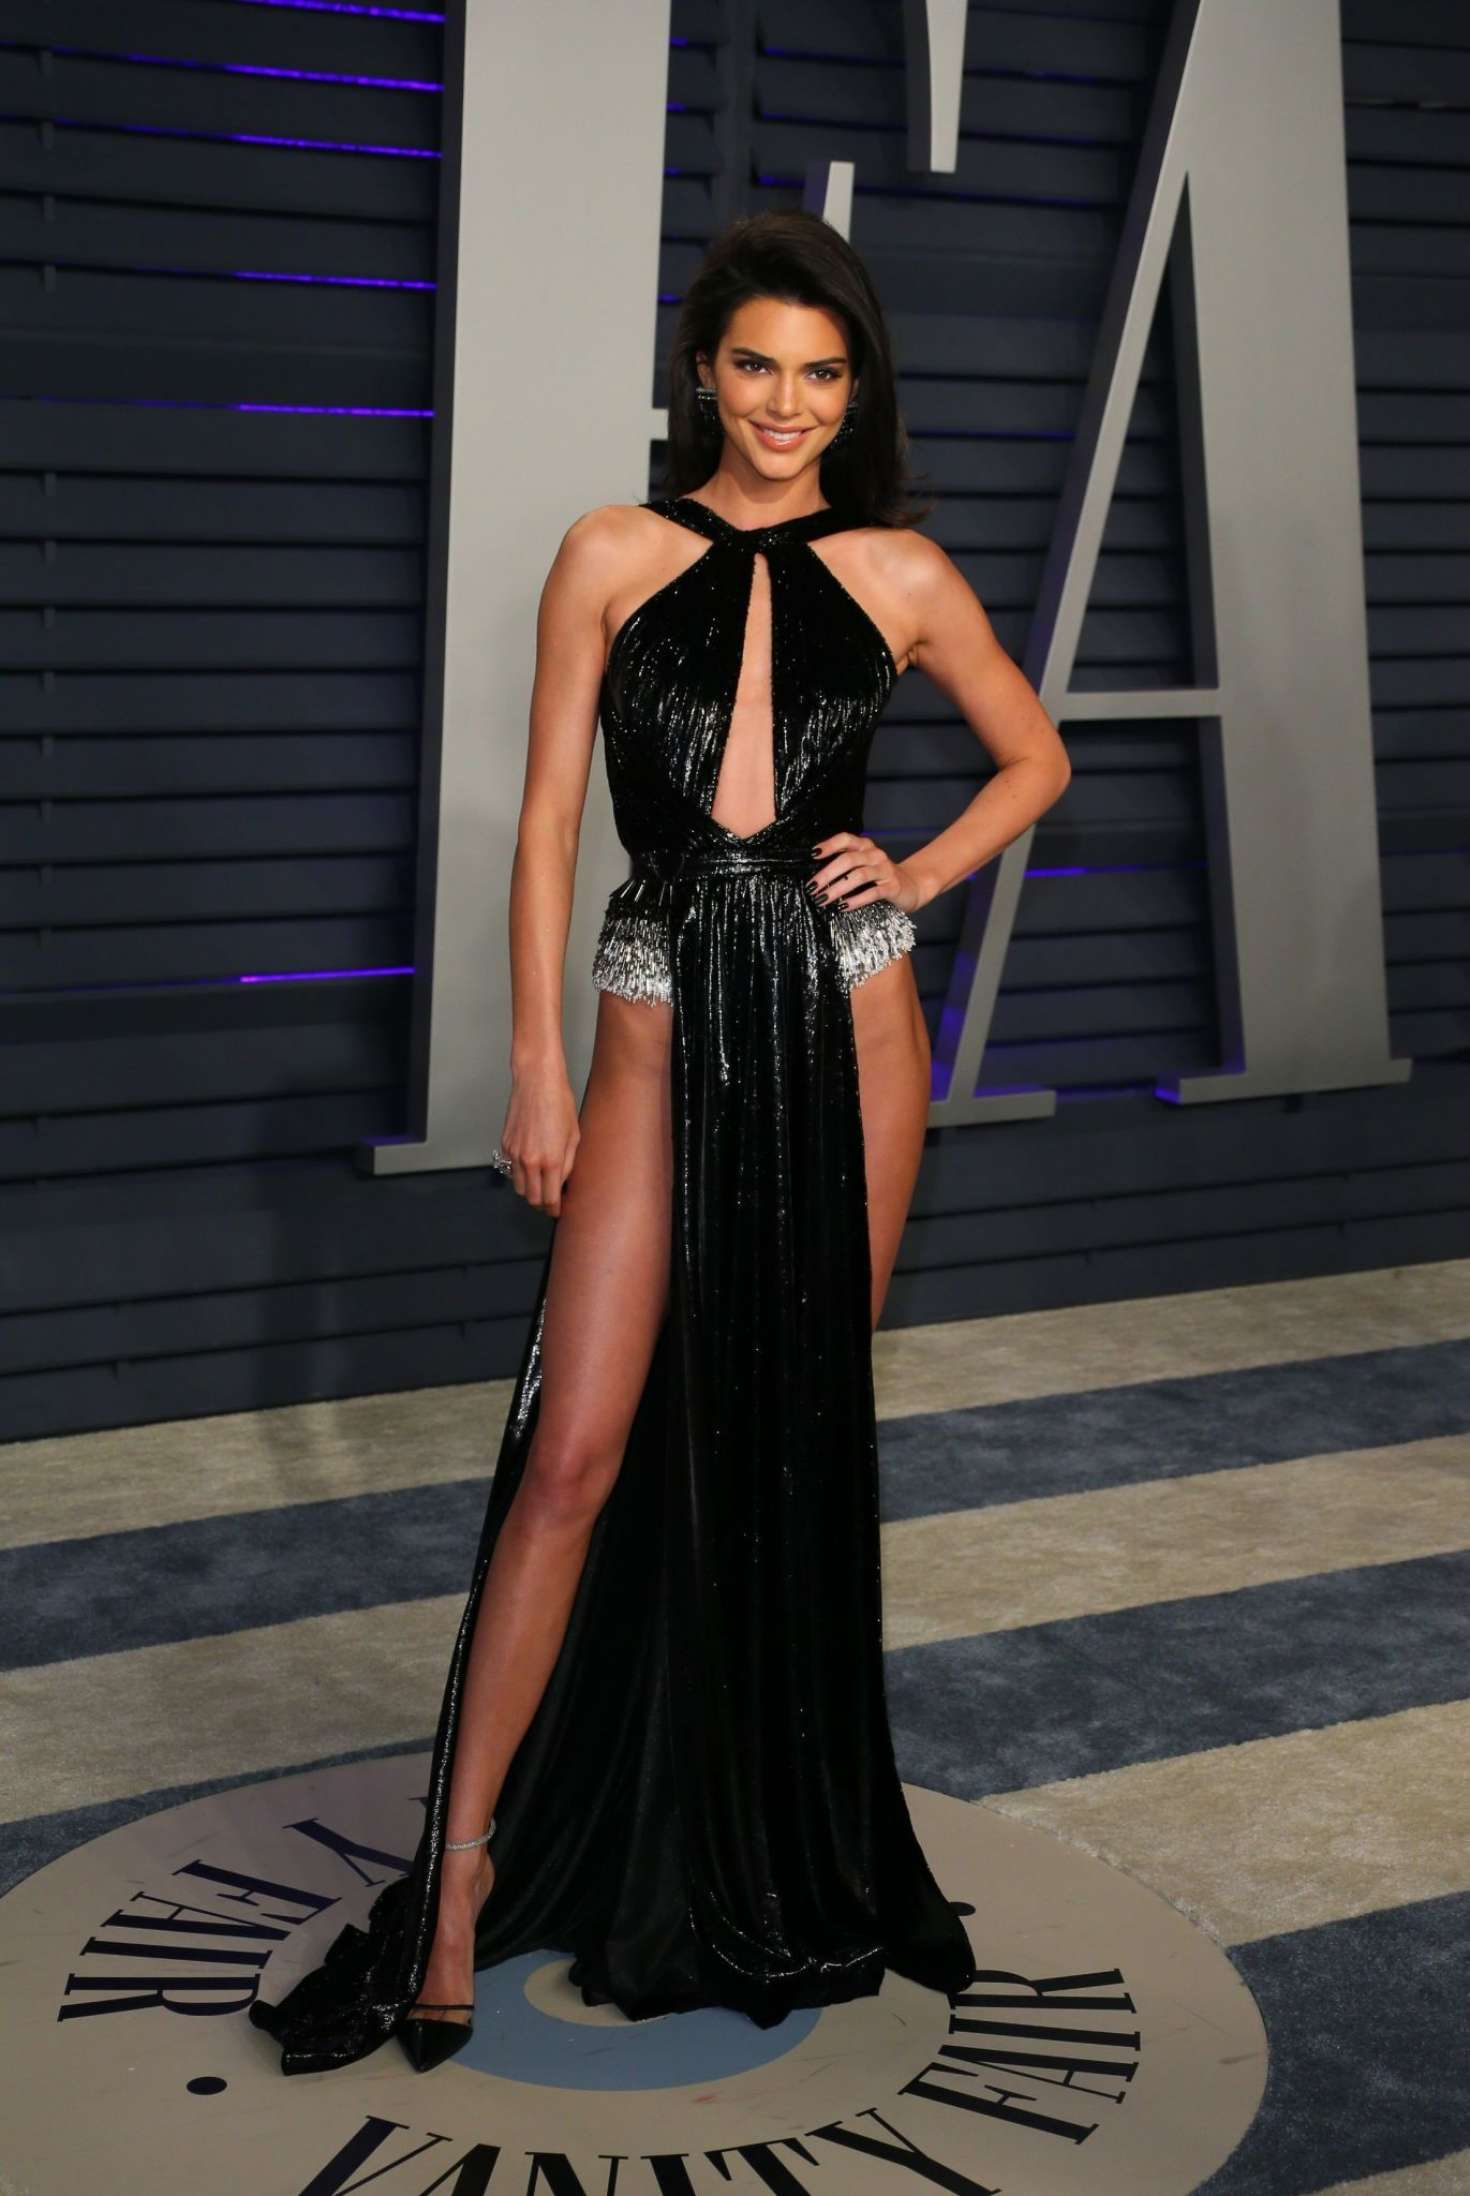 Kendall Jenner donning pointy black pumps with high heel and thin ankle strap